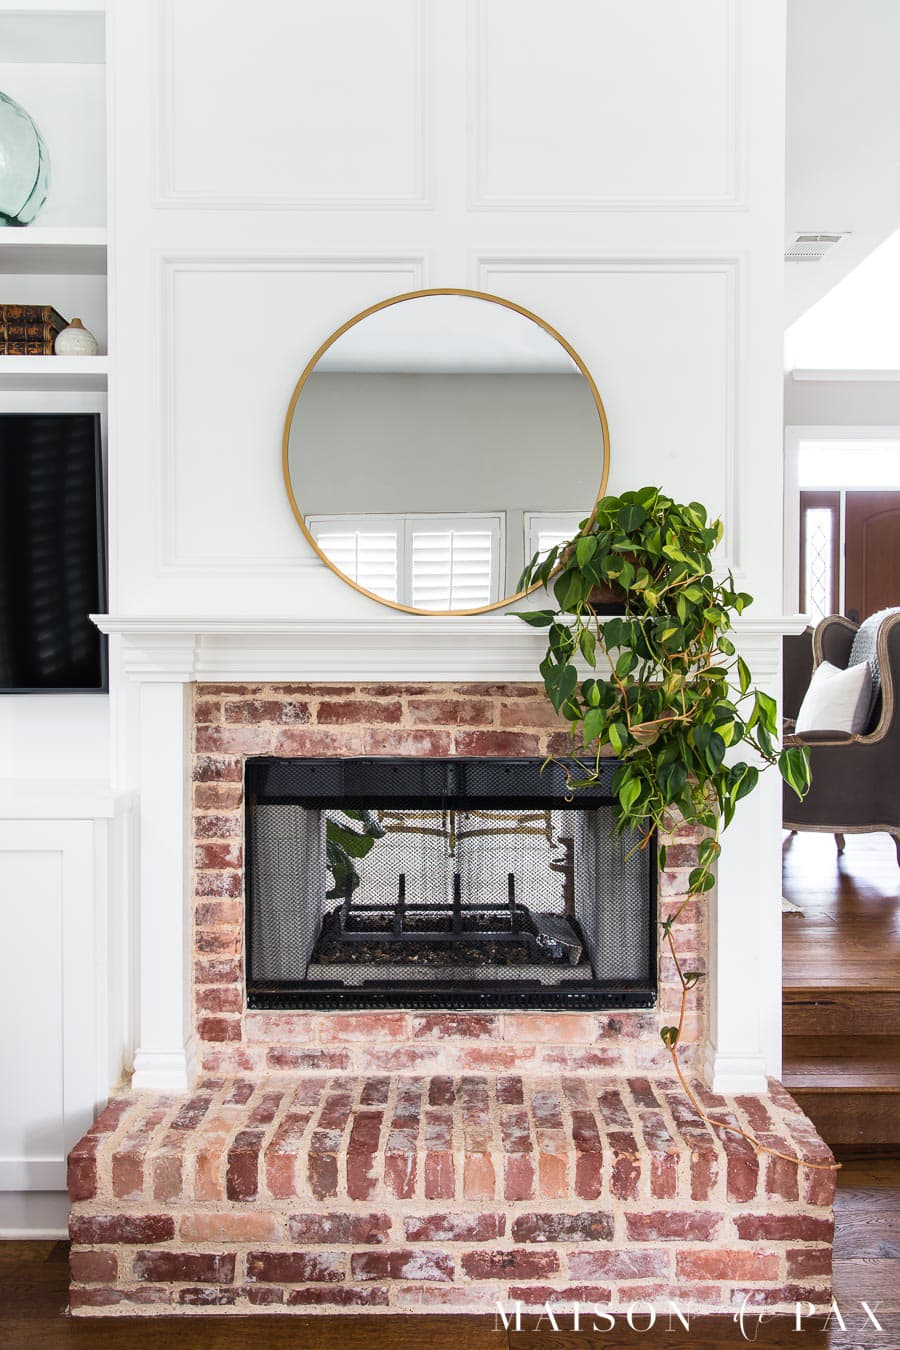 round brass mirror above mantel with trailing philodendron | Maison de Pax